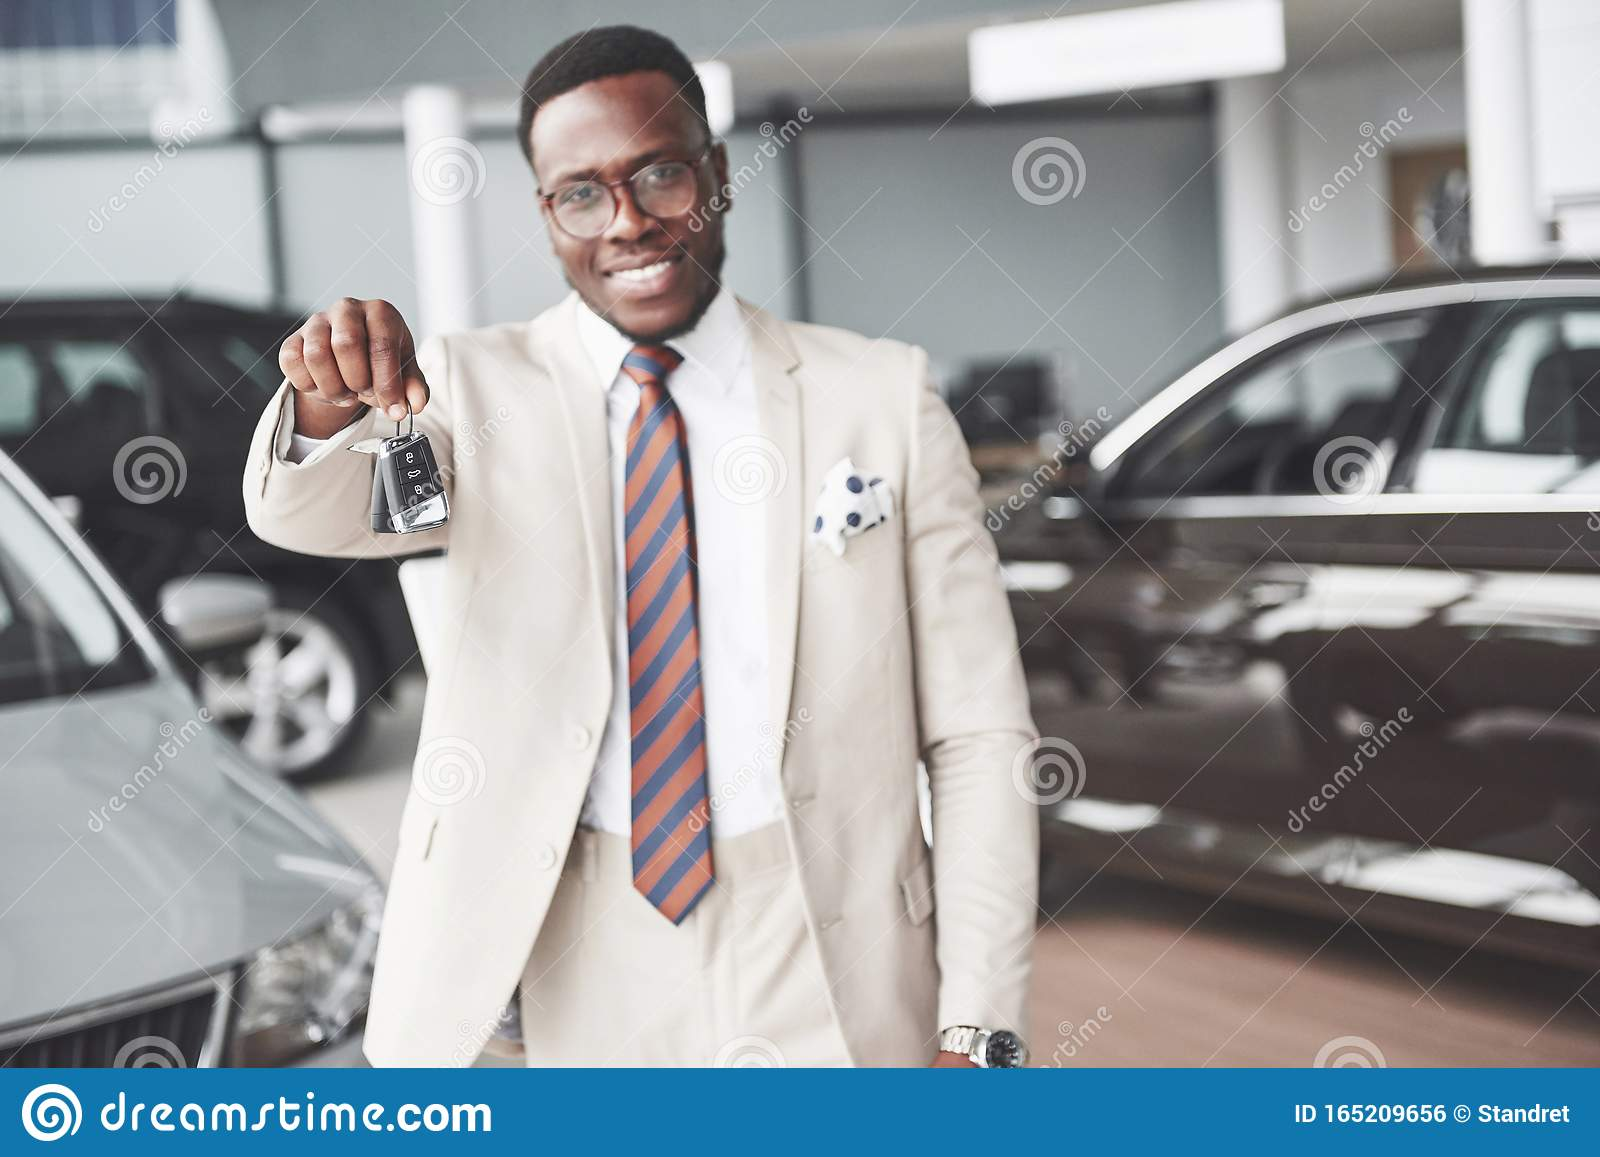 The Young Attractive Black Businessman Buys A New Car He Holds The Keys In His Hand Dreams Come True Stock Photo Image Of Convertible Excited 165209656